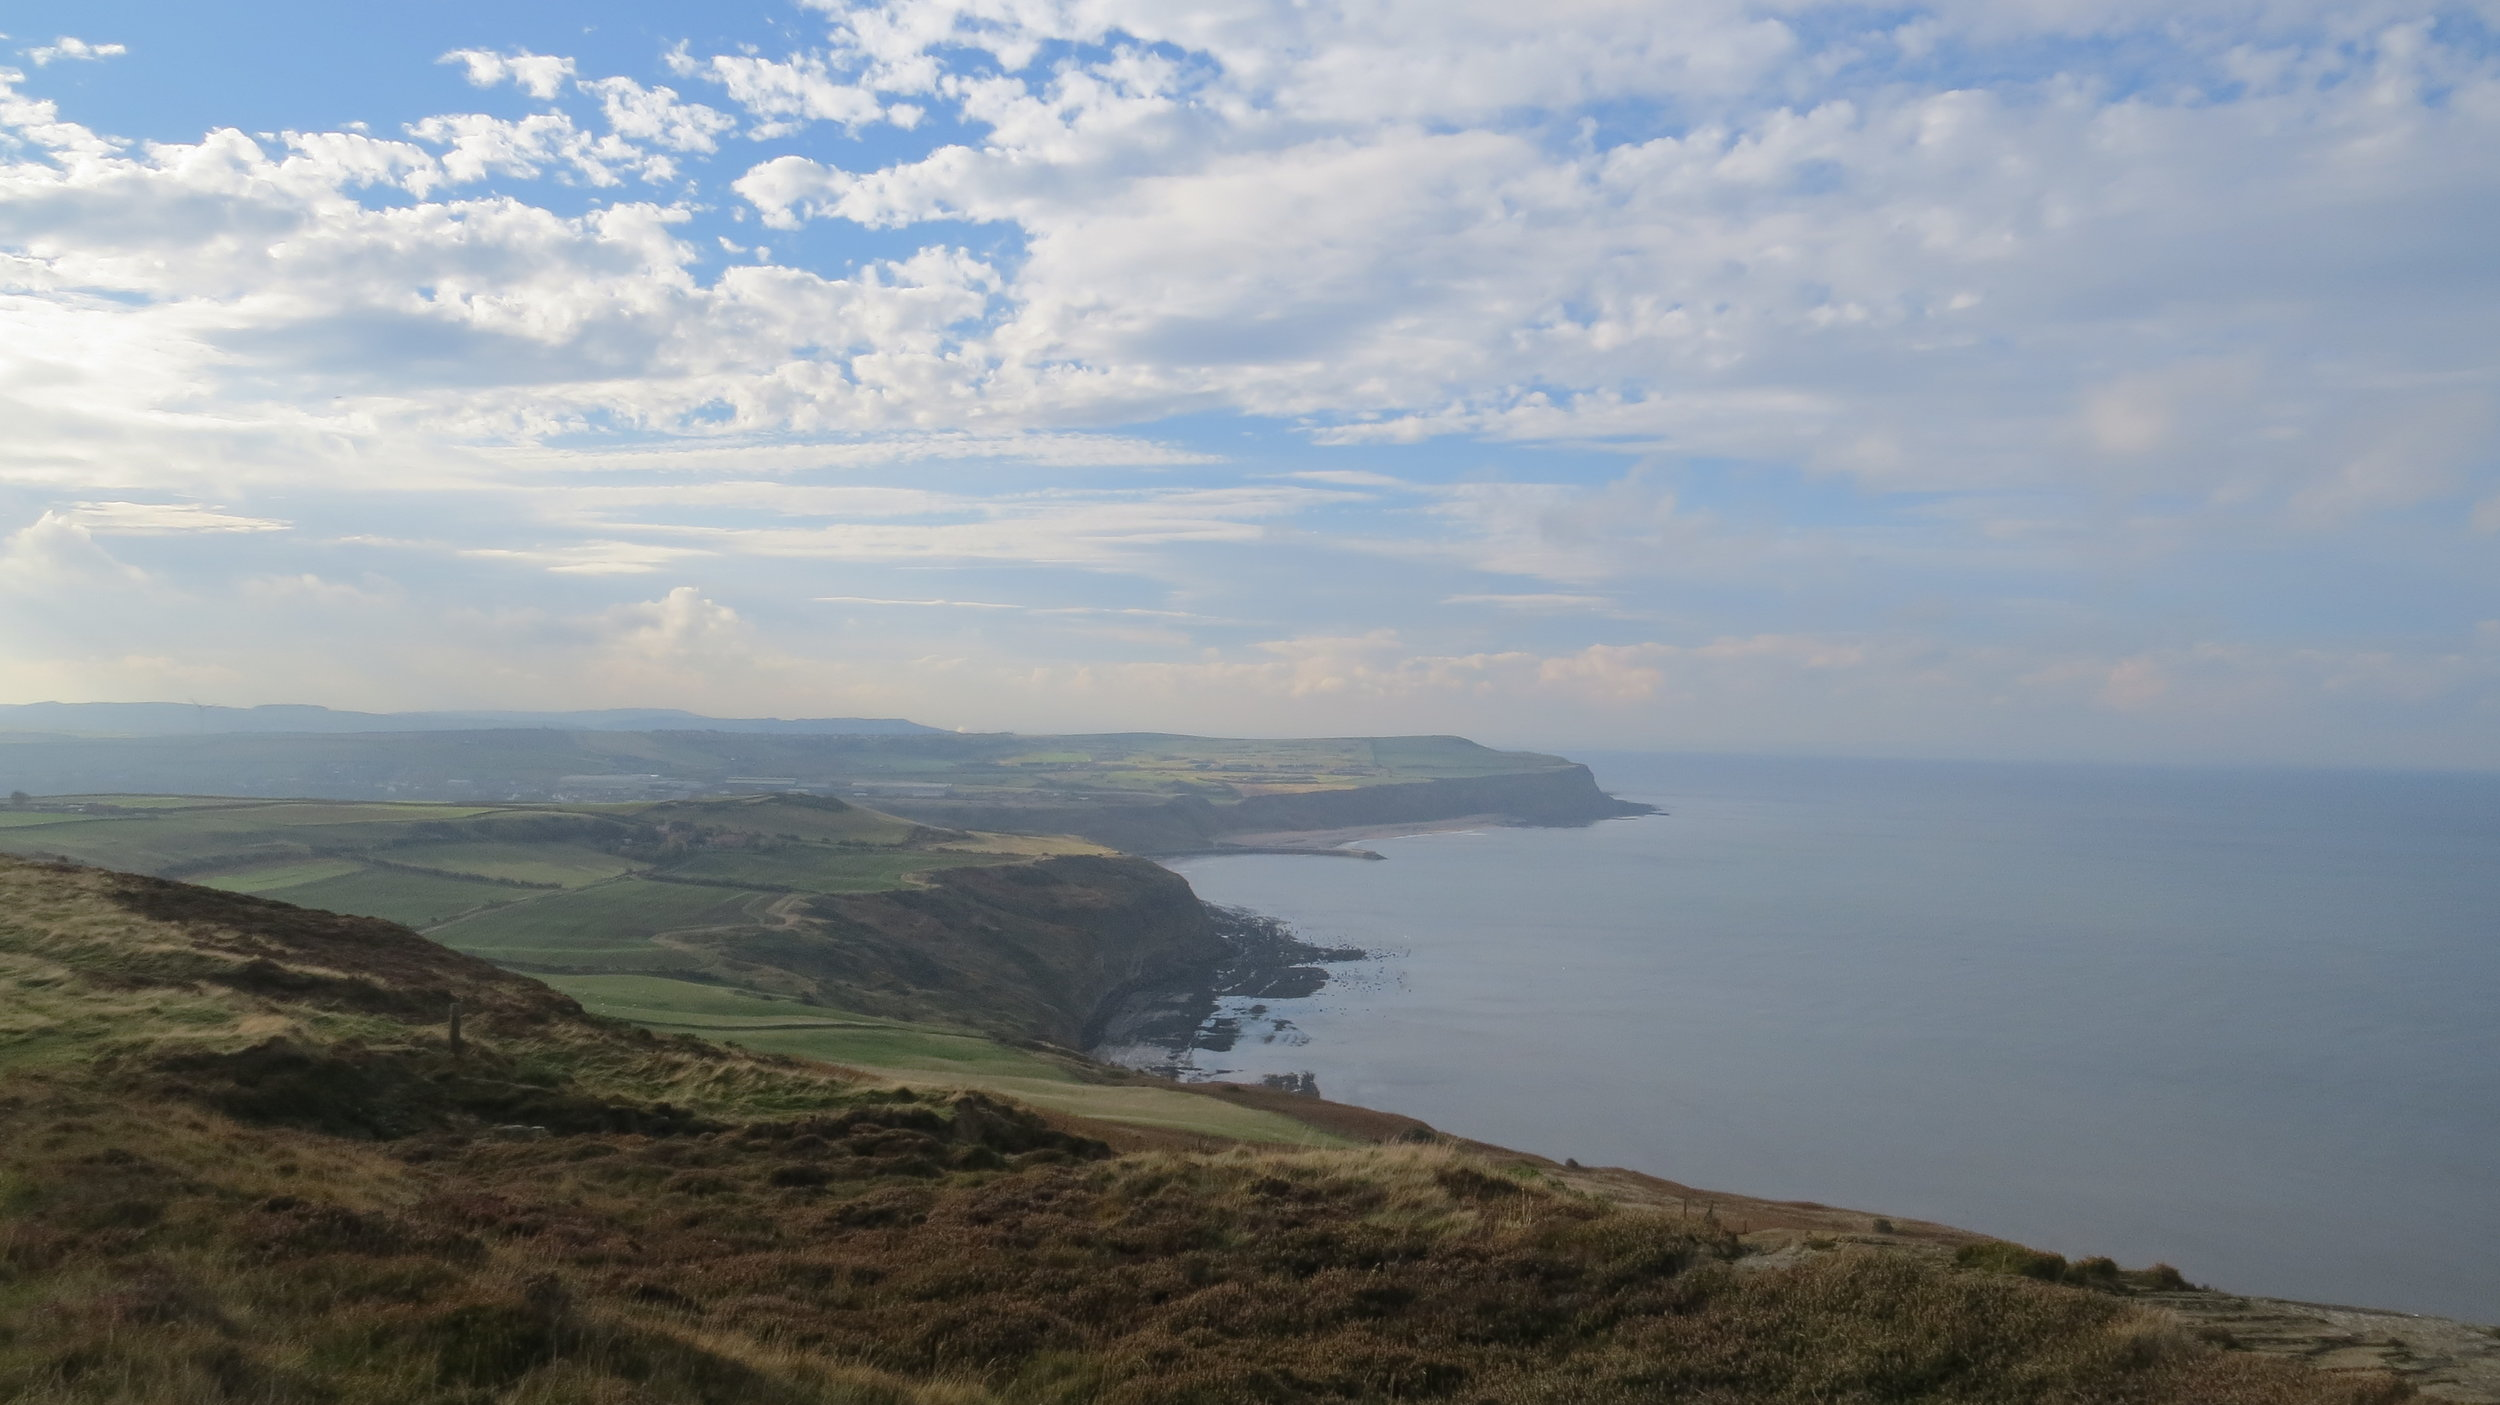 View from Highest Point on East Coast (well a few hundred meters away)